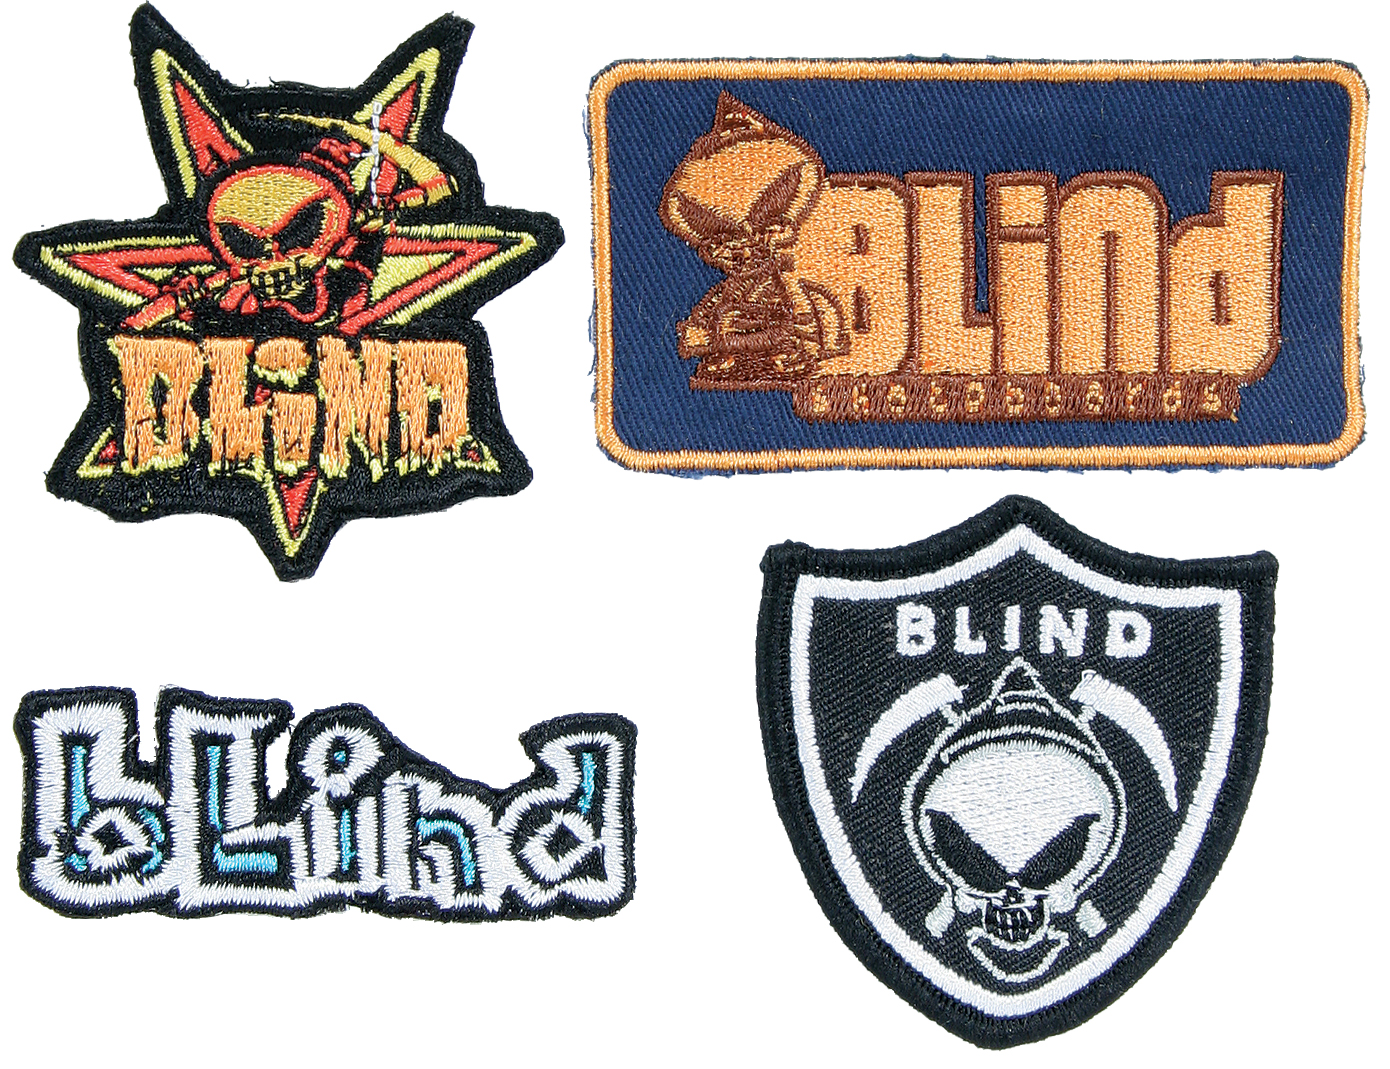 Skateboard Blind Fuse has a way for you to show your style and support of the brand with Blind Fuse Skateboard Patches. Assorted styles and colors amp up your skate gear and keep the holes covered from those dirty falls when the shred didn't quite work out. These patches can be used wherever you need a little Blind Fuse to give you insight; pants, shirts, jackets, hats, or even get creative in your room. Do yourself a favor and step up your style with Blind Fuse Skateboard Patches. - $2.95